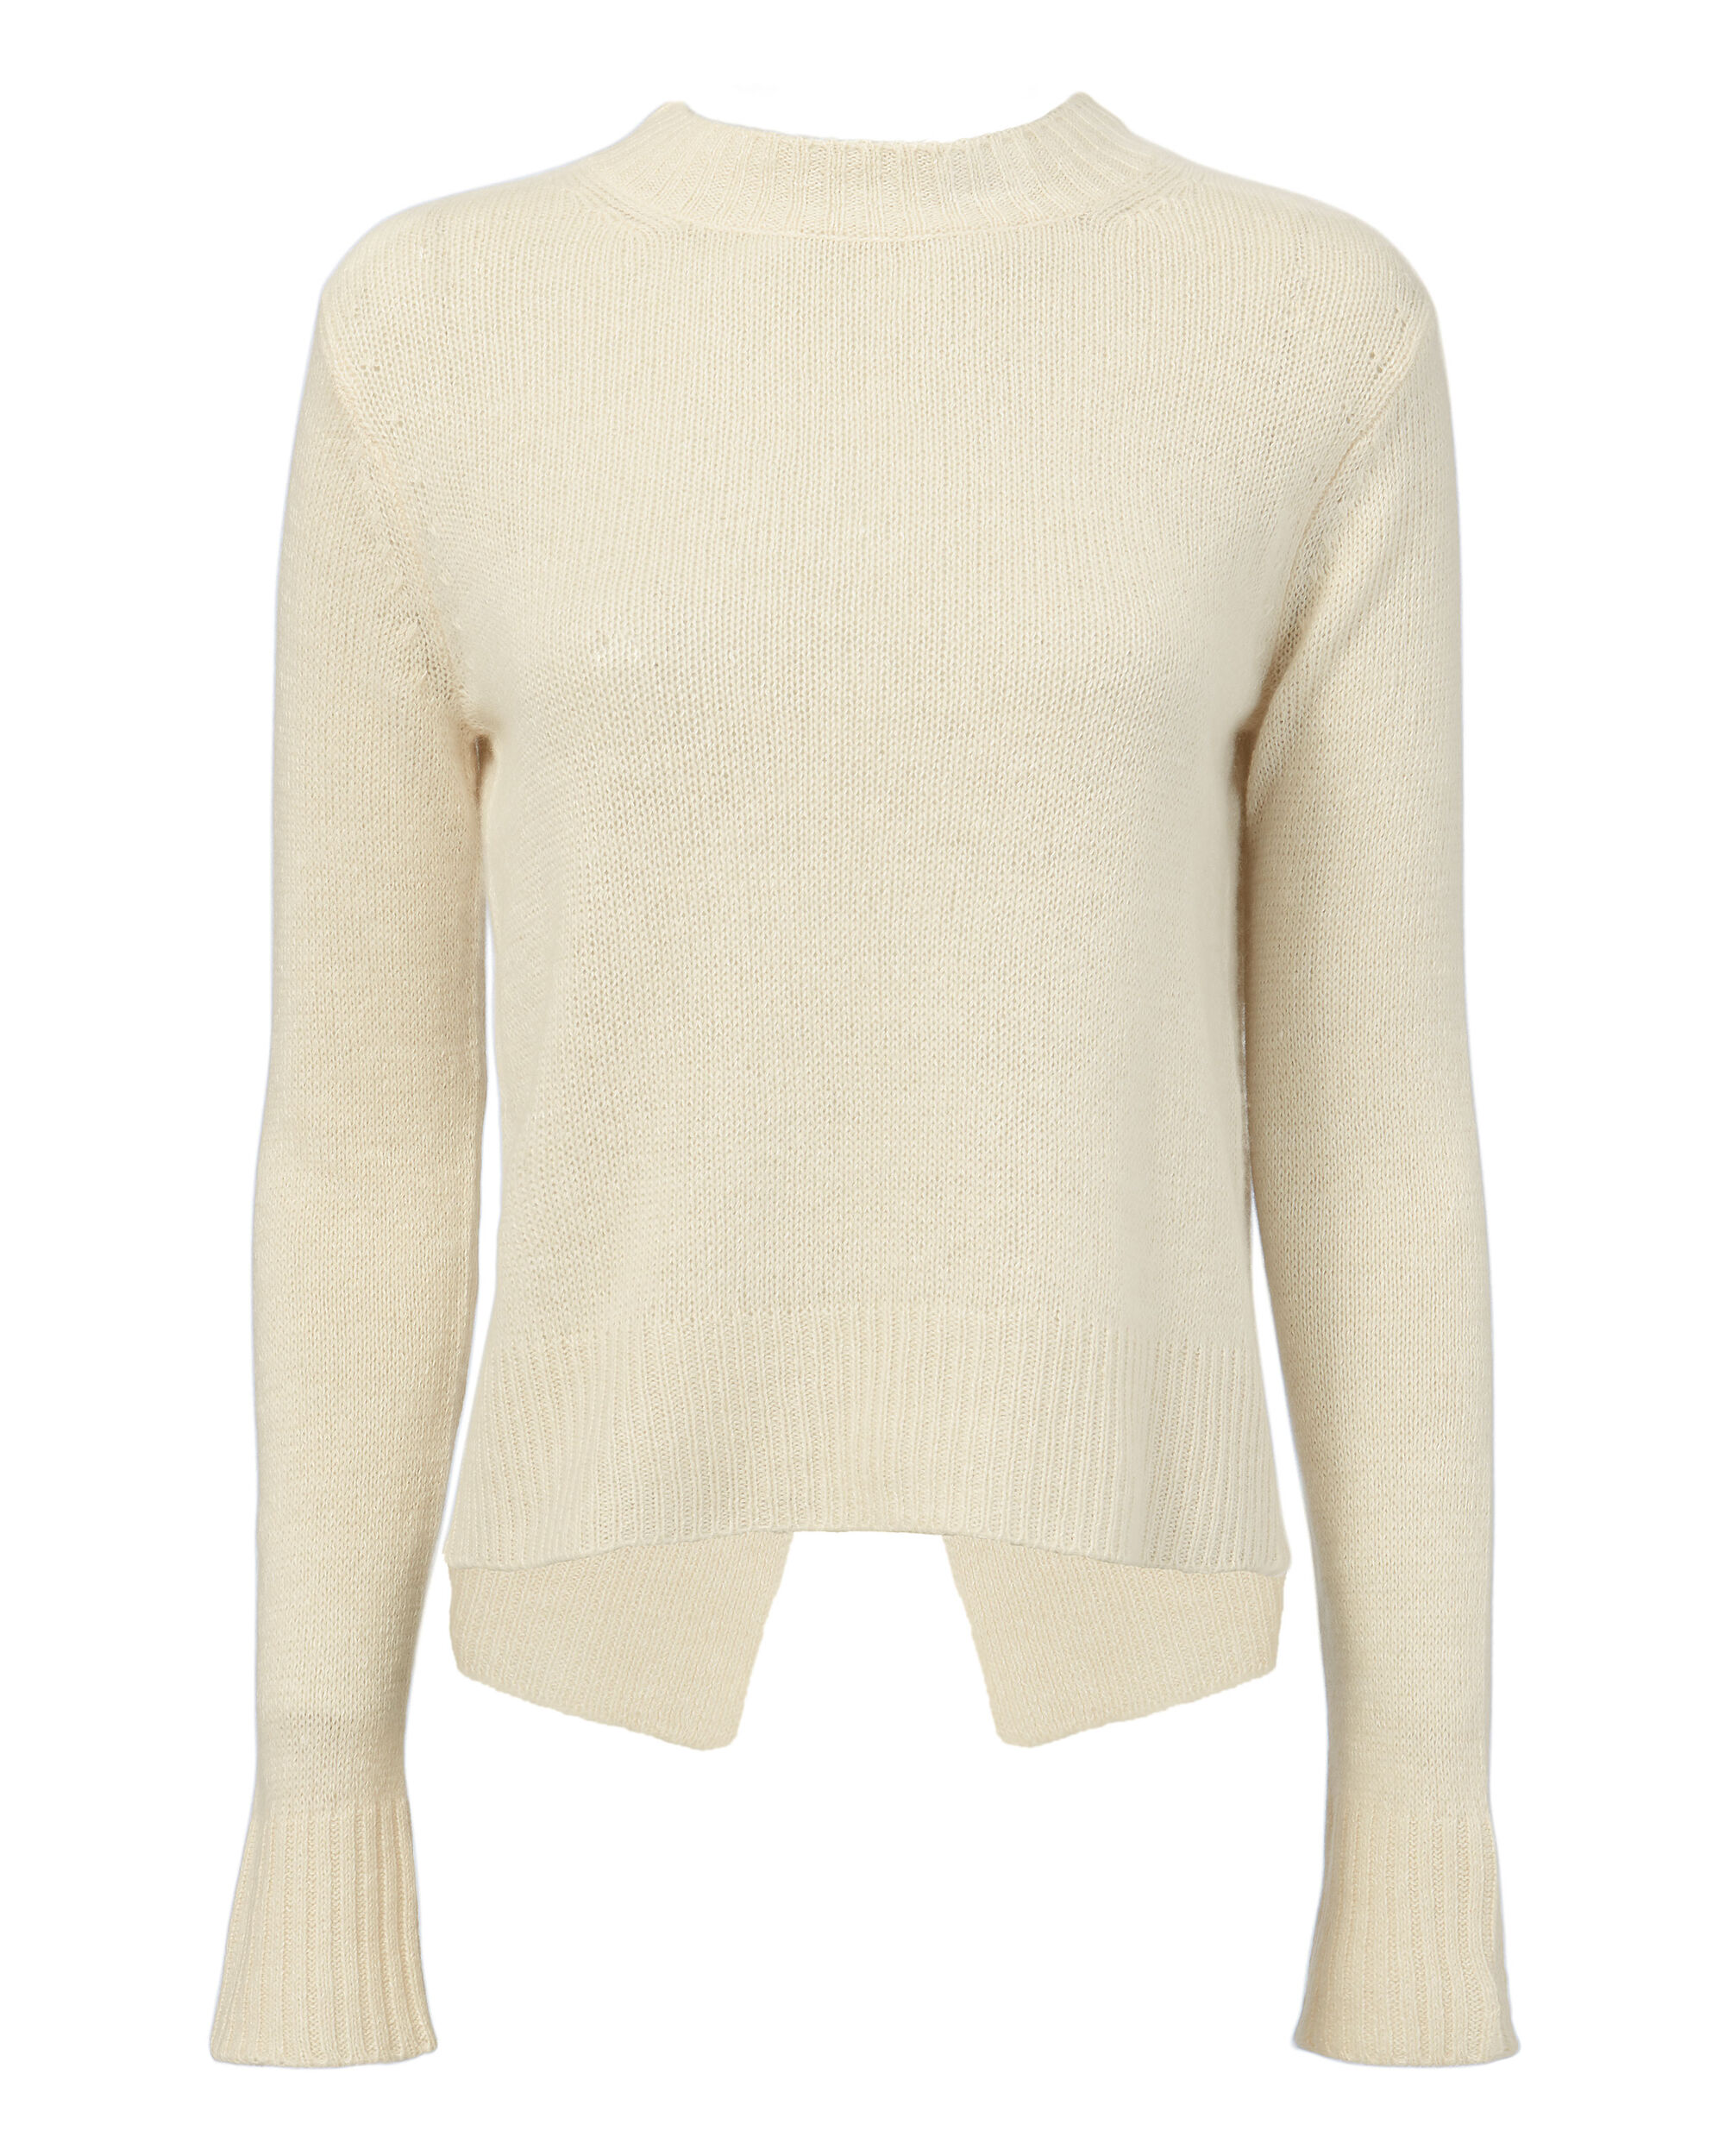 Ring-Detailed Open Back Sweater, IVORY, hi-res